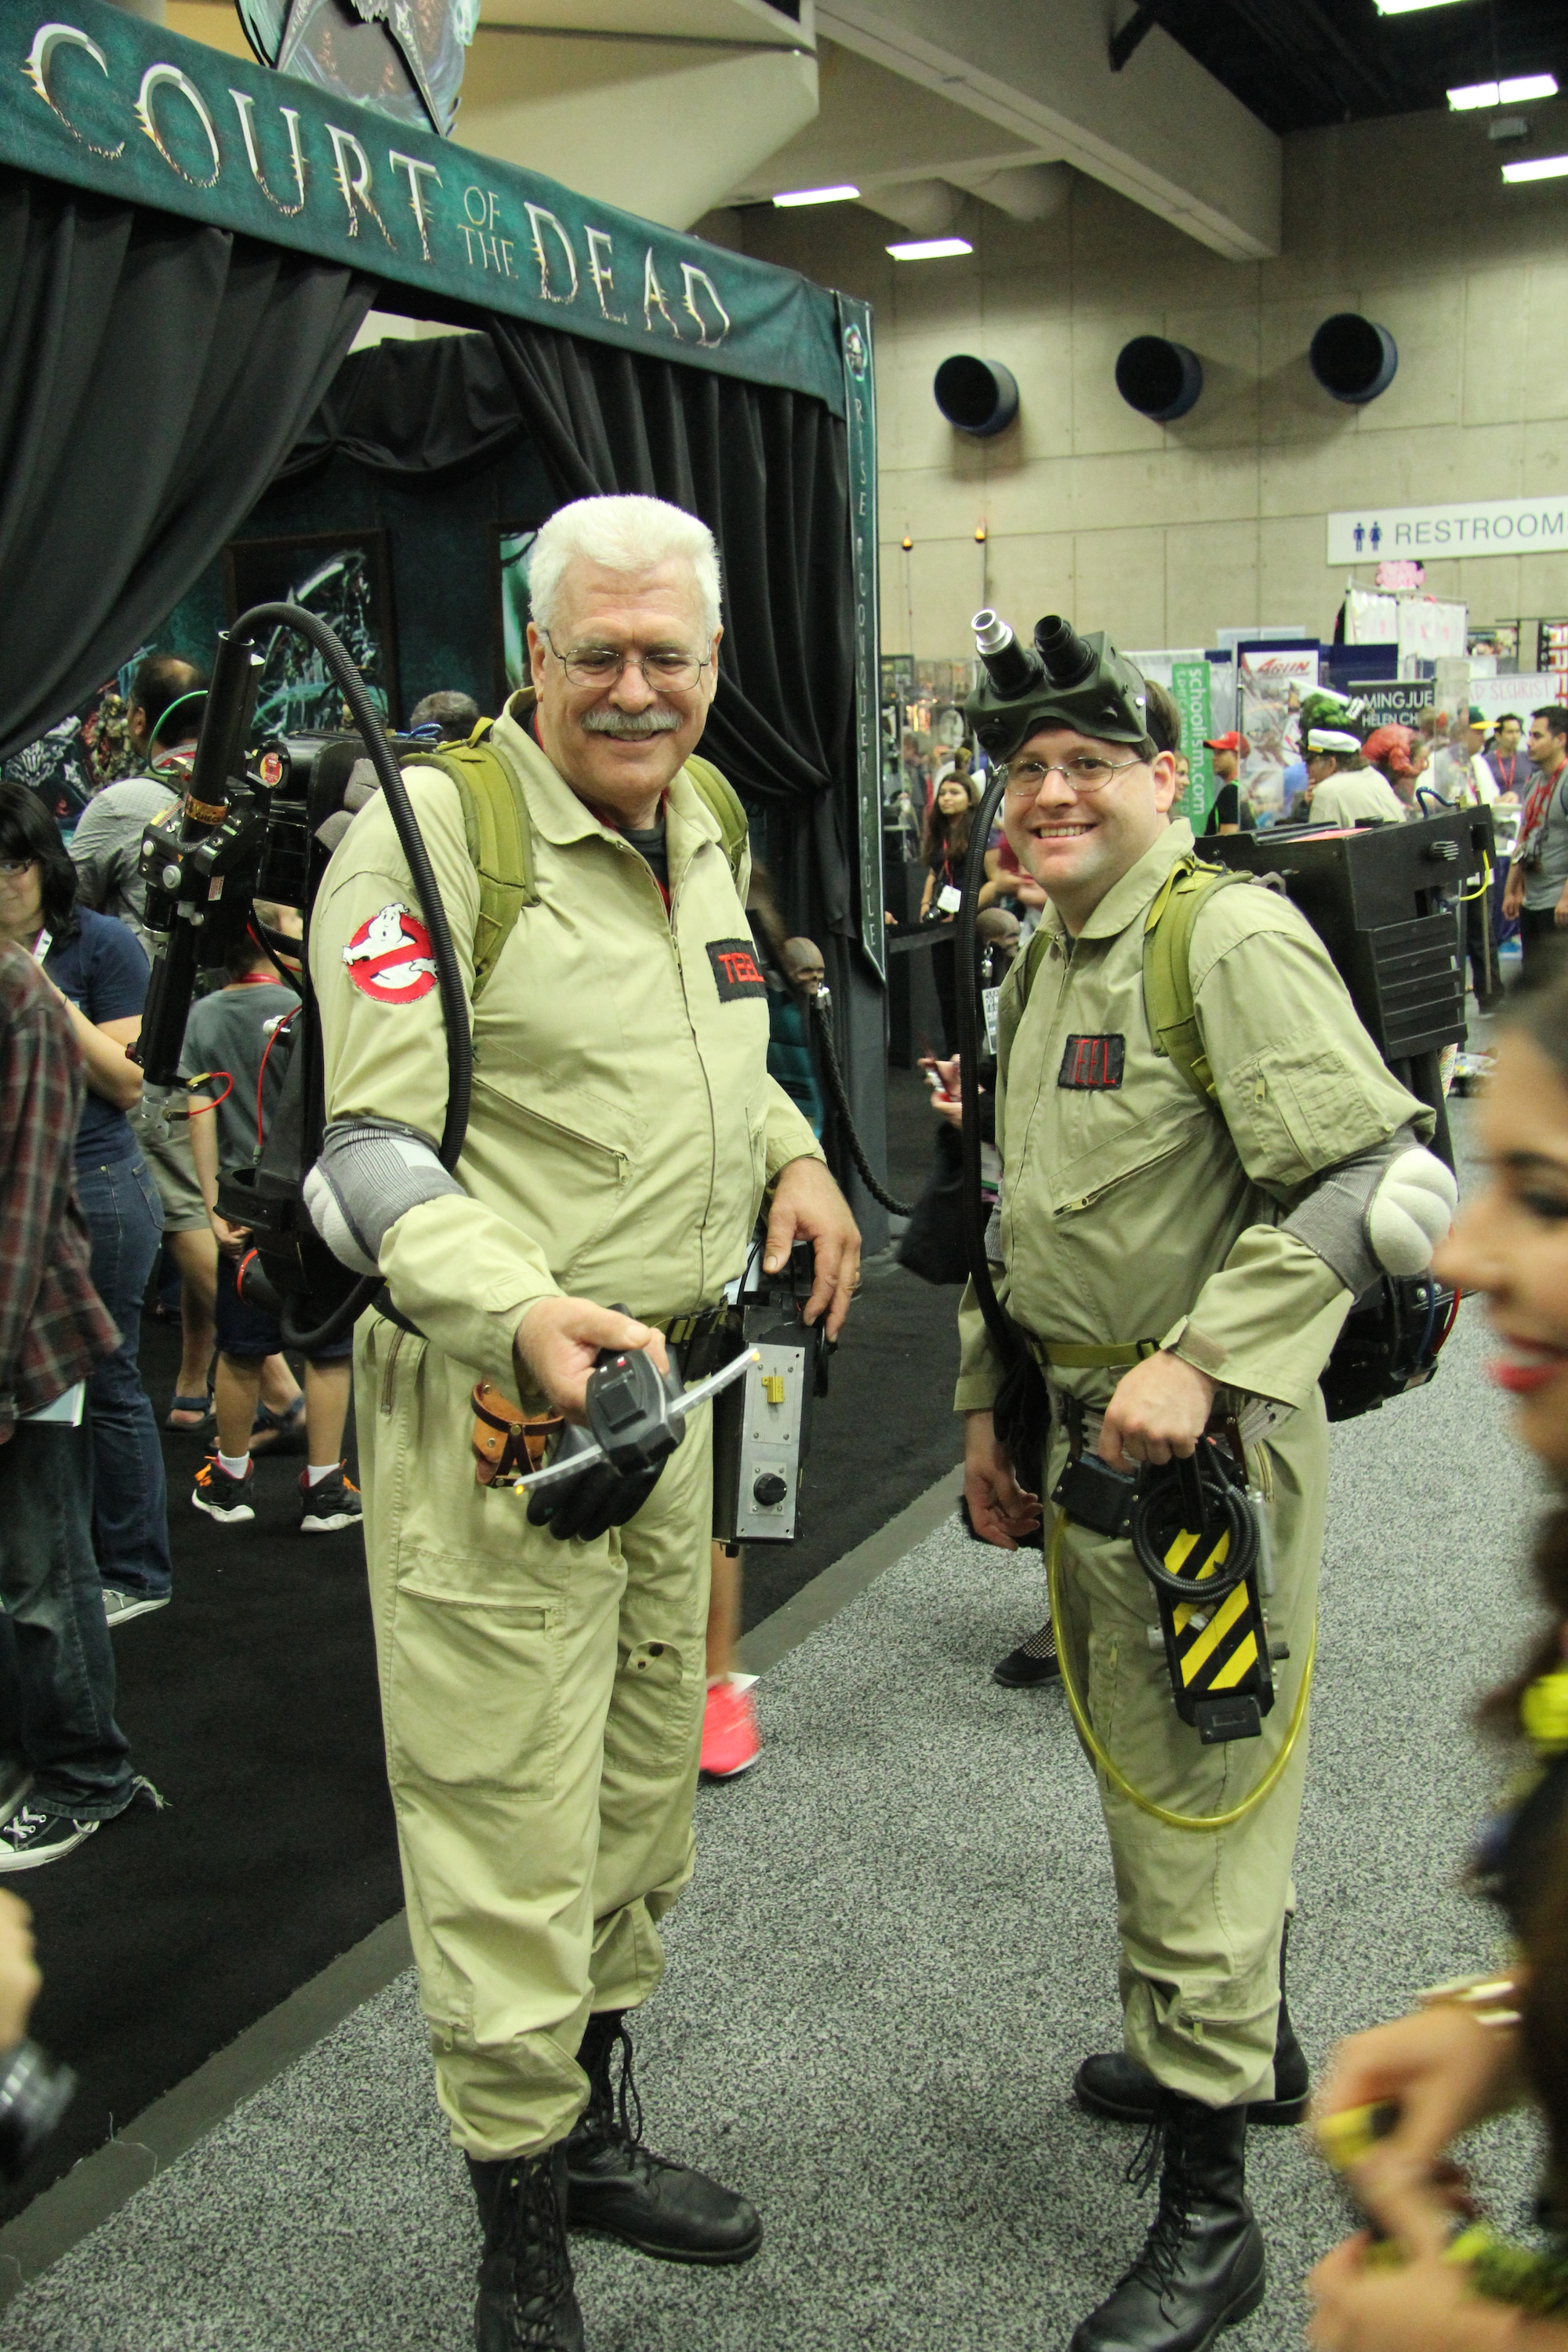 Comic-Con 2014: Cosplay - Ghostbusters a San Diego